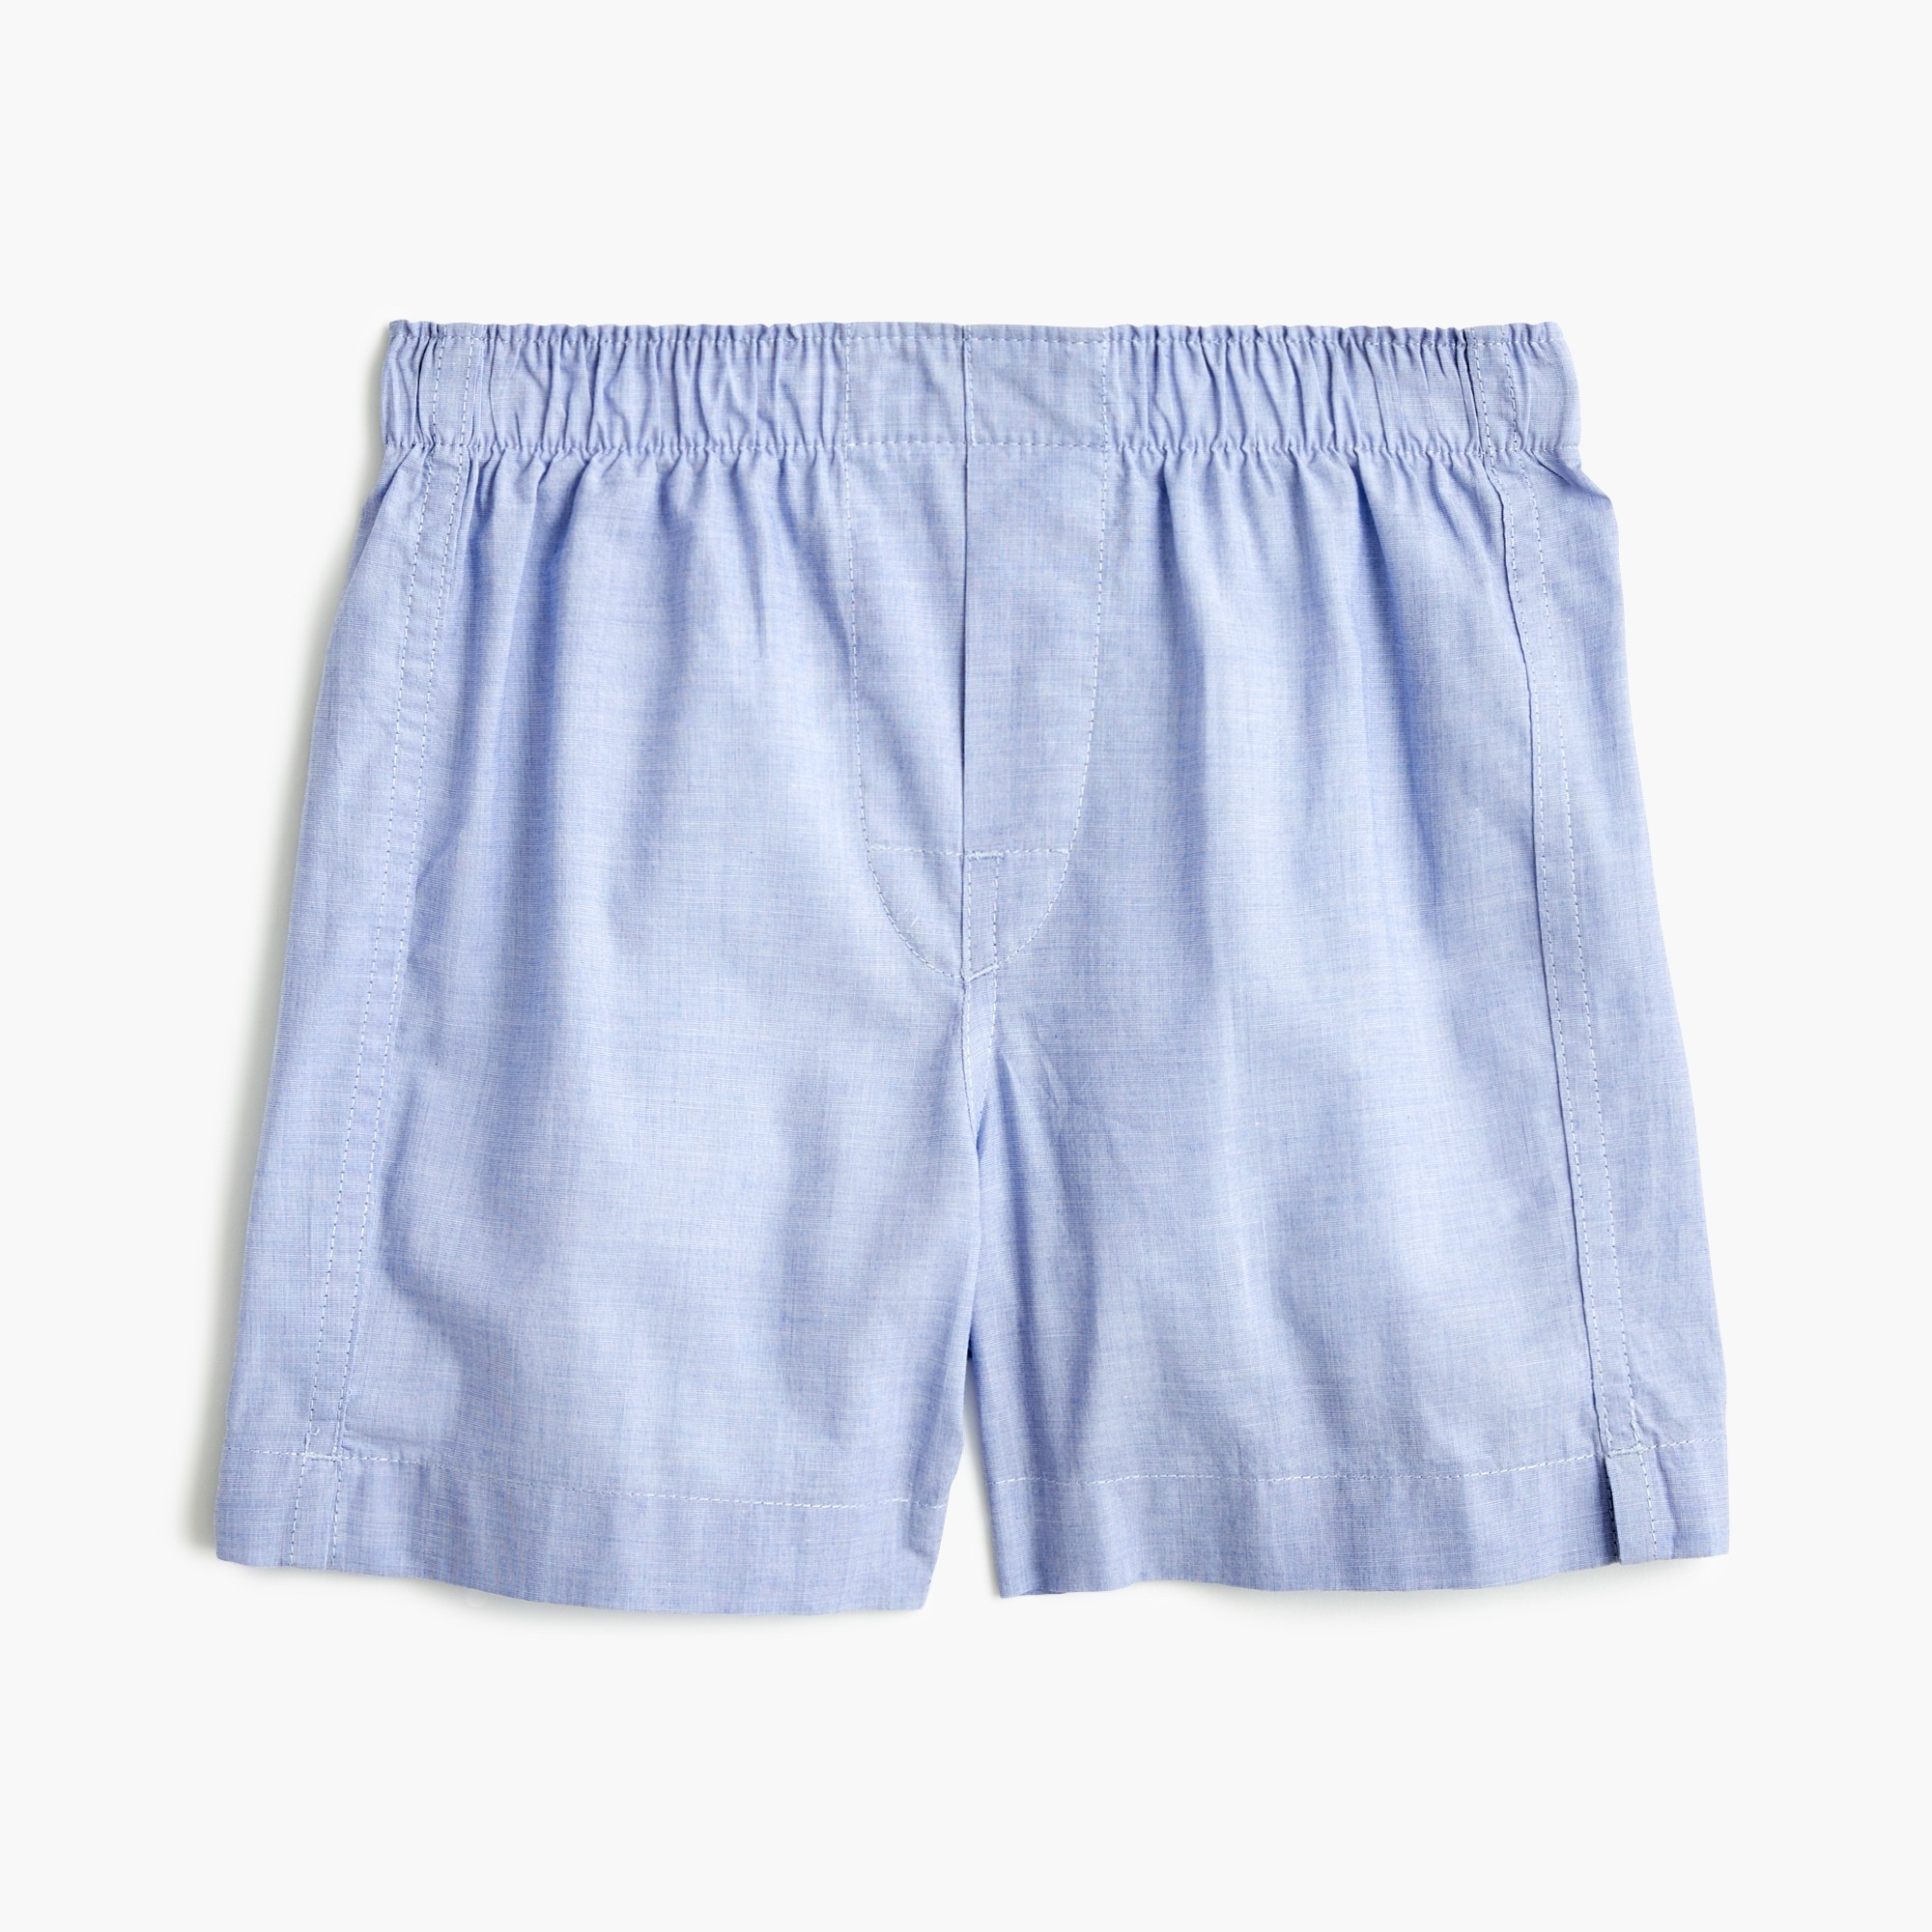 factory boys Boys' cotton boxers in end-on-end